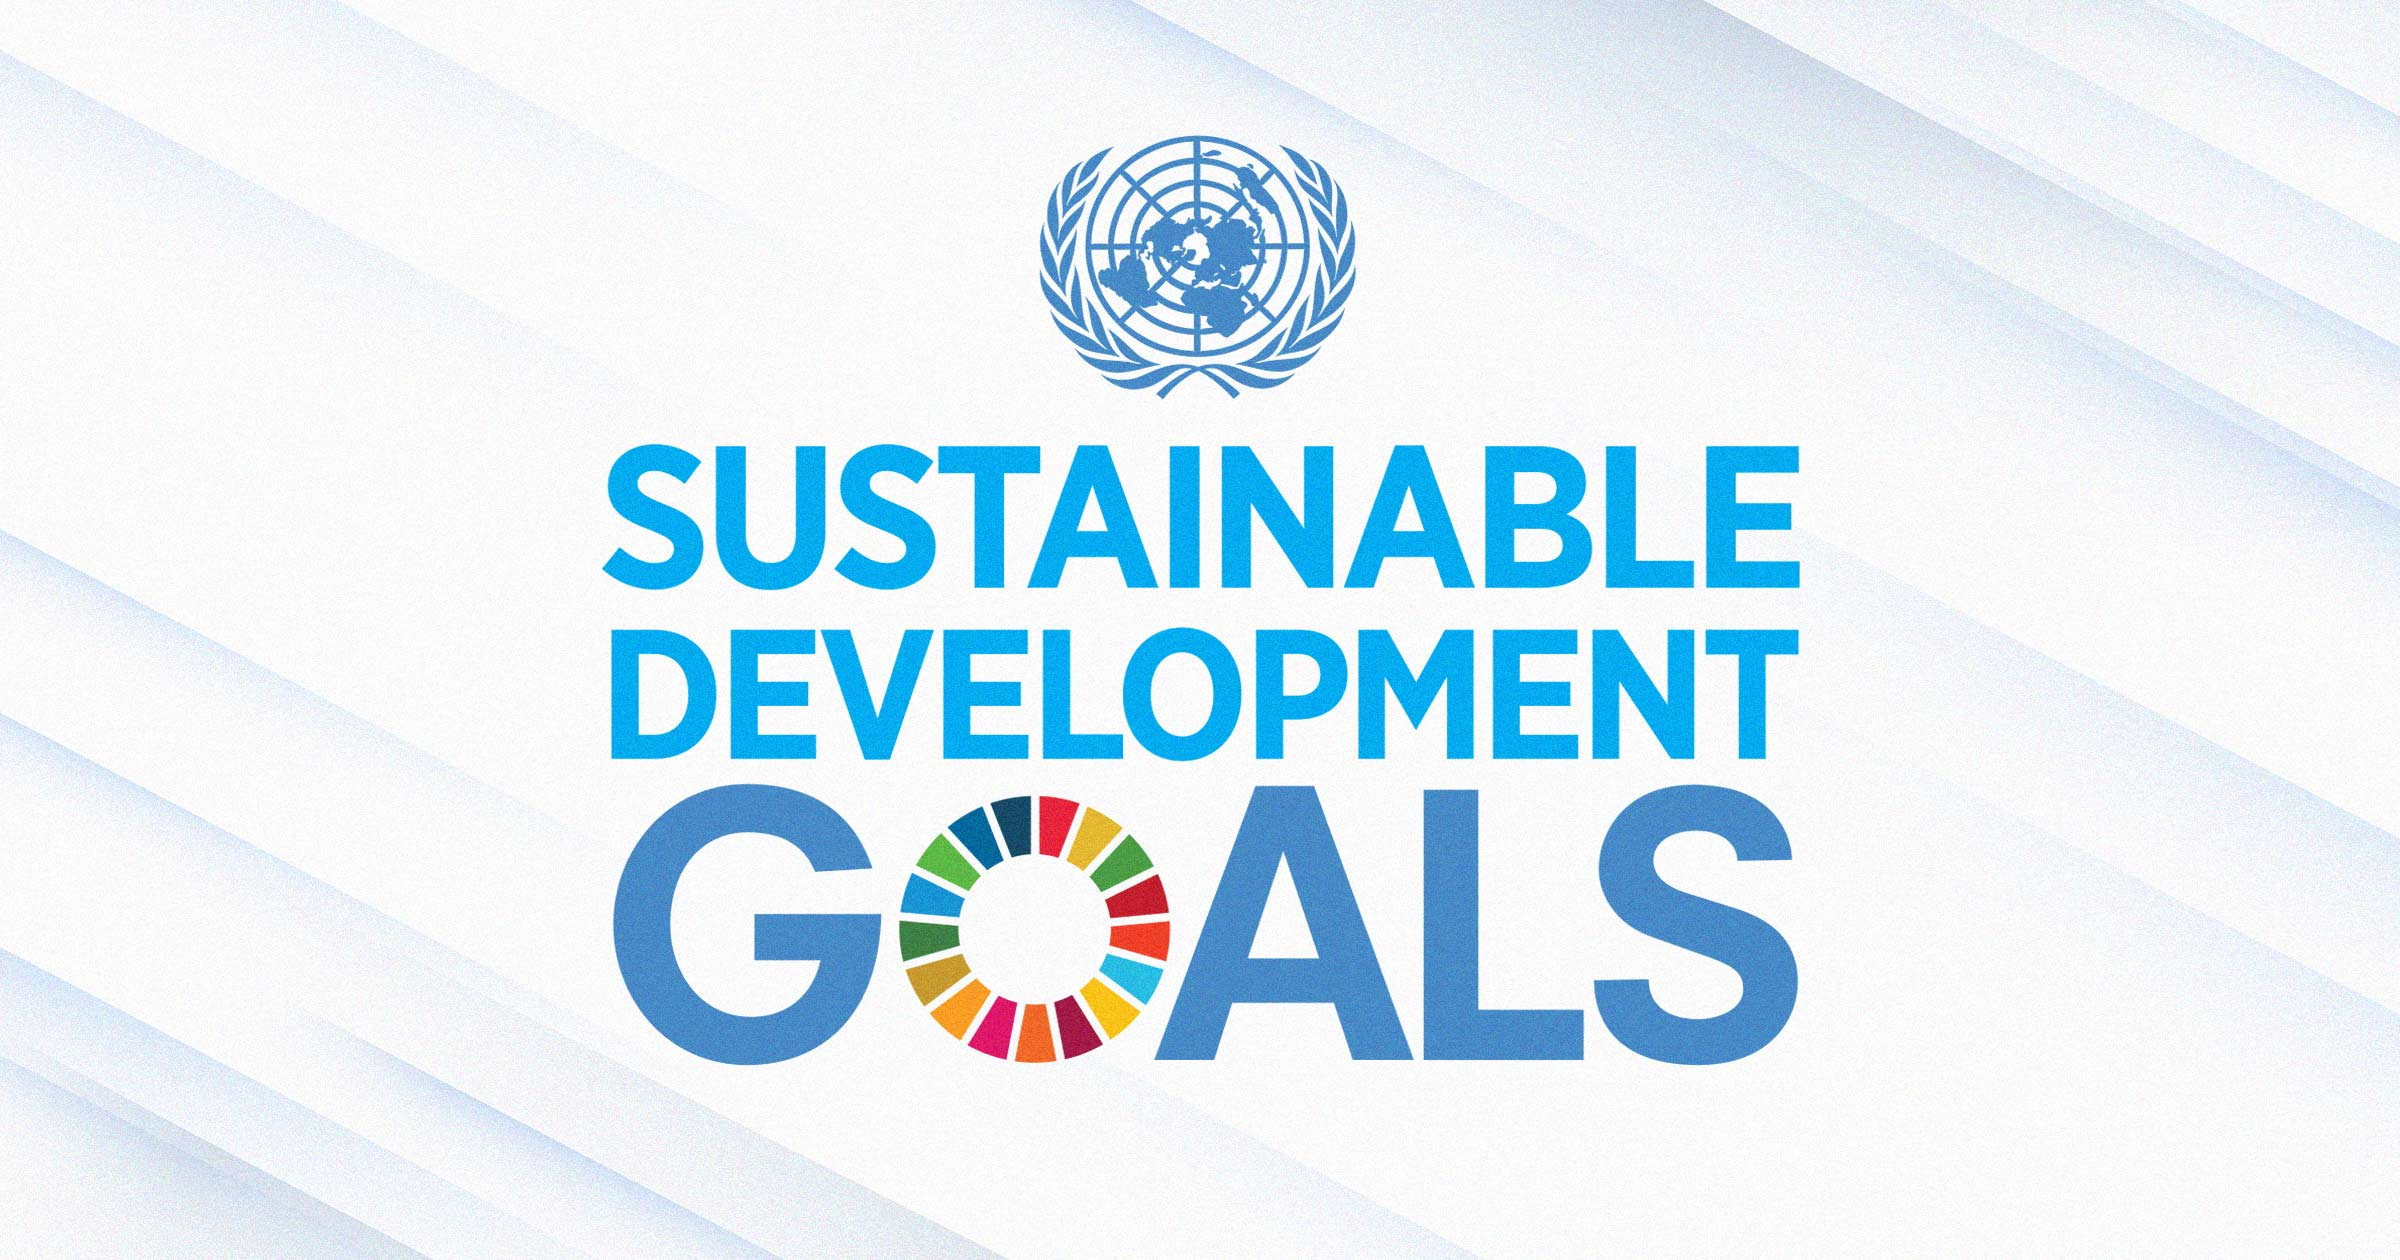 How a Circular Economy Can Help Achieve the U.N. Sustainable Development Goals